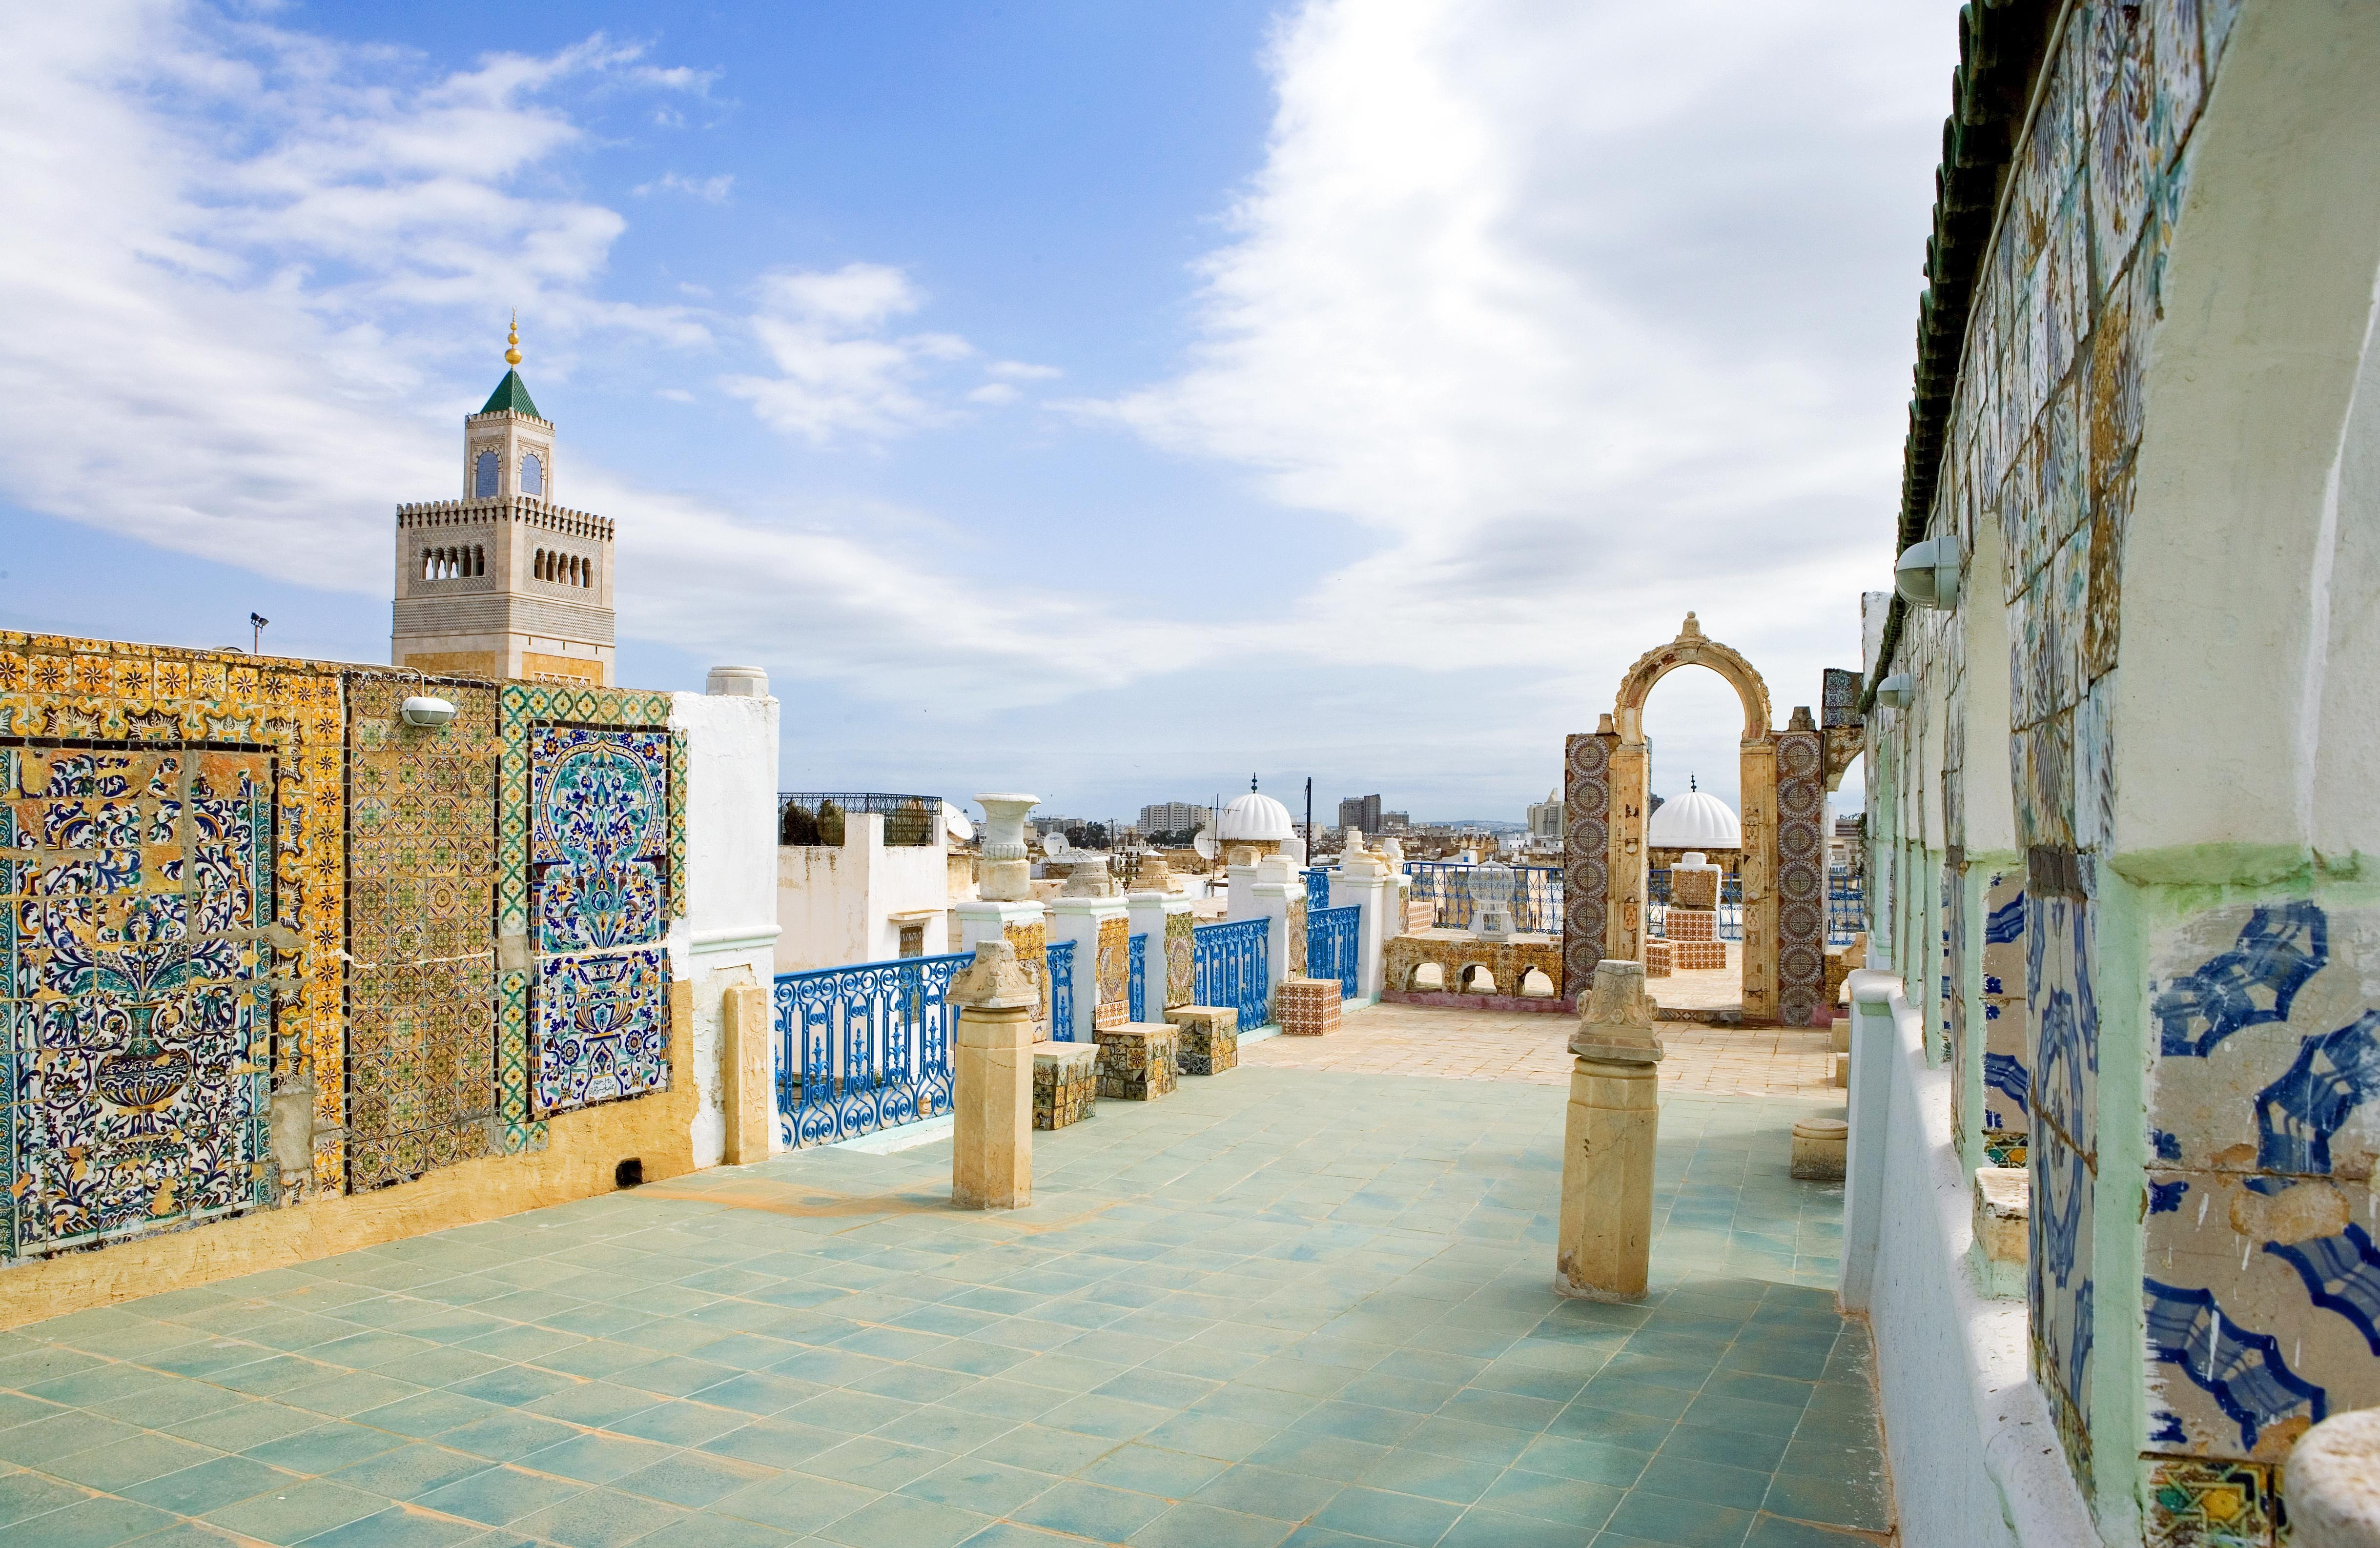 How to Spend 1 Day in Tunis